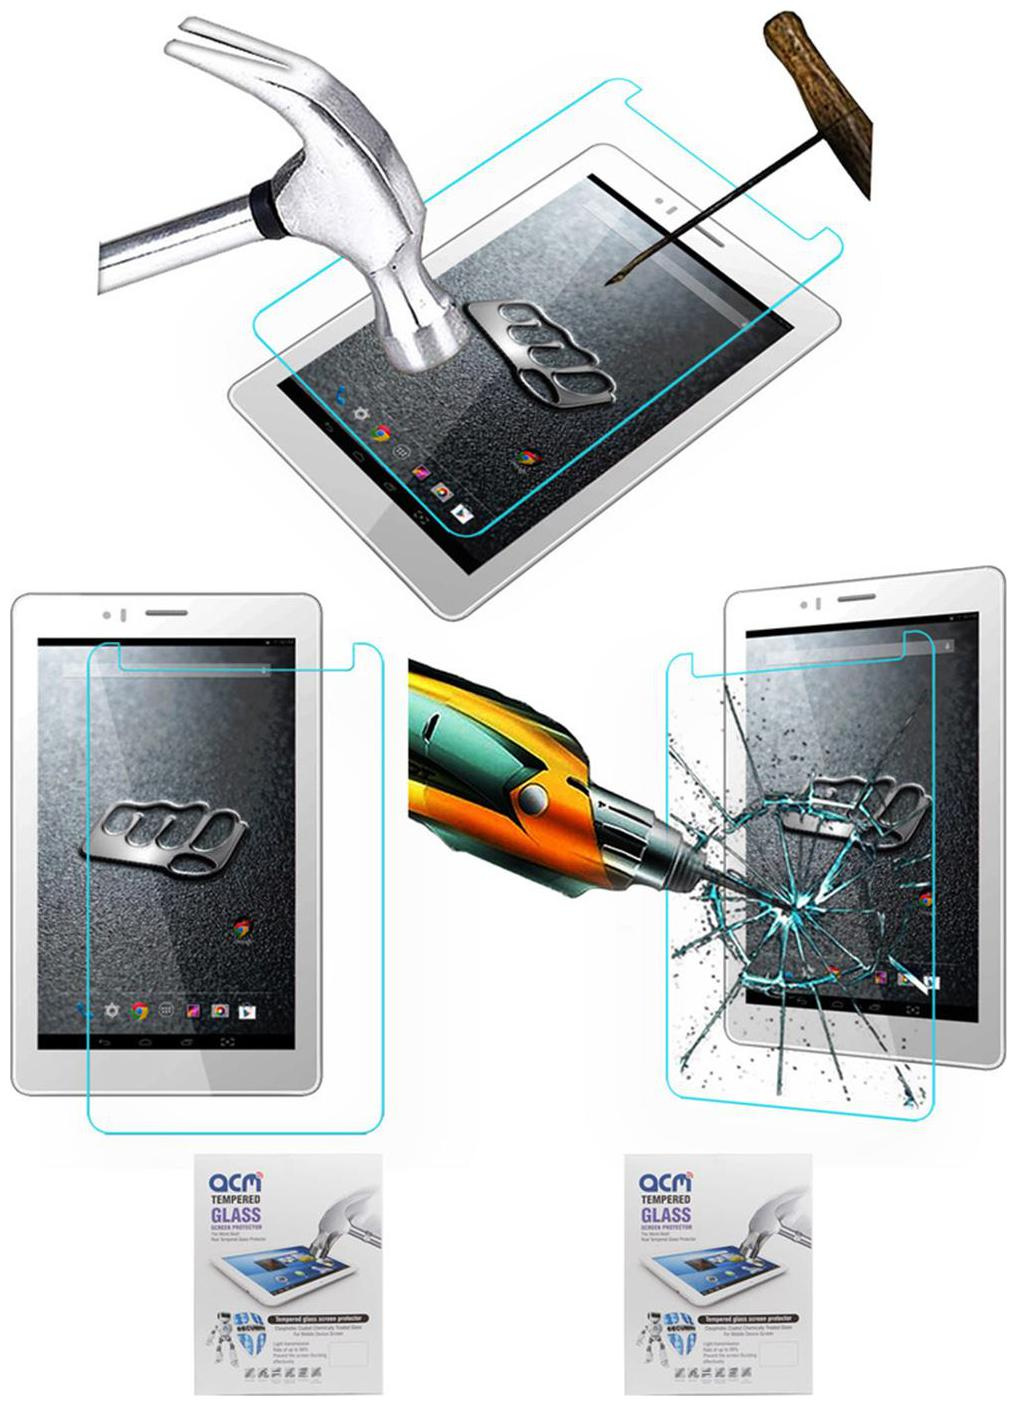 Acm Pack Of 2 Tempered Glass Screenguard For Micromax Canvas Tab P470 Tablet Screen Guard Scratch Protector